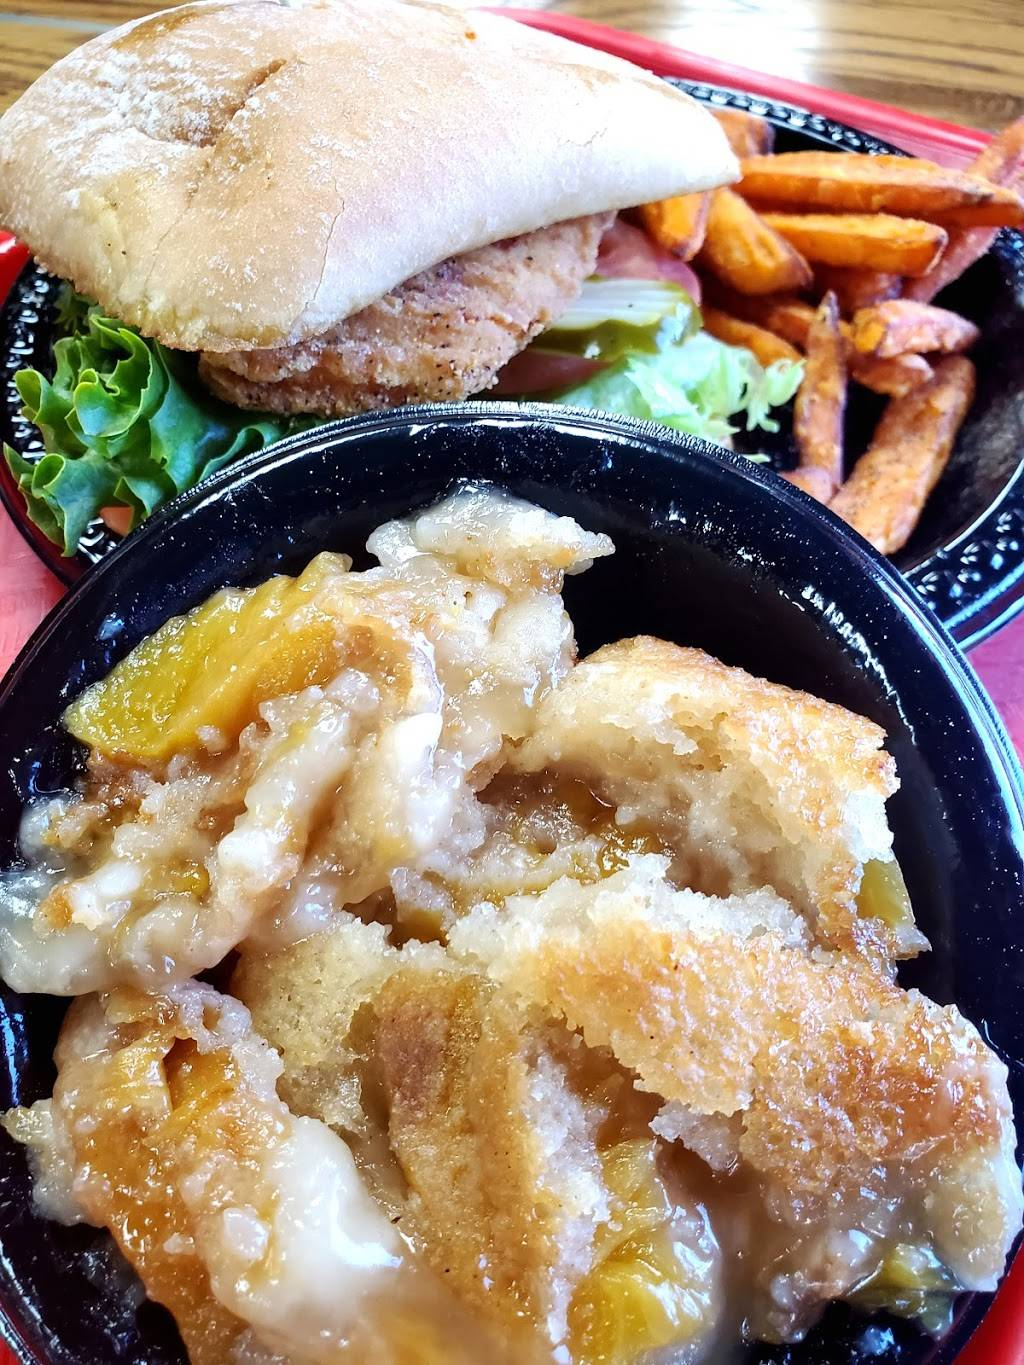 Freedom Family Grill | restaurant | 2730 Spot Rd, Cumming, GA 30040, USA | 7708875200 OR +1 770-887-5200